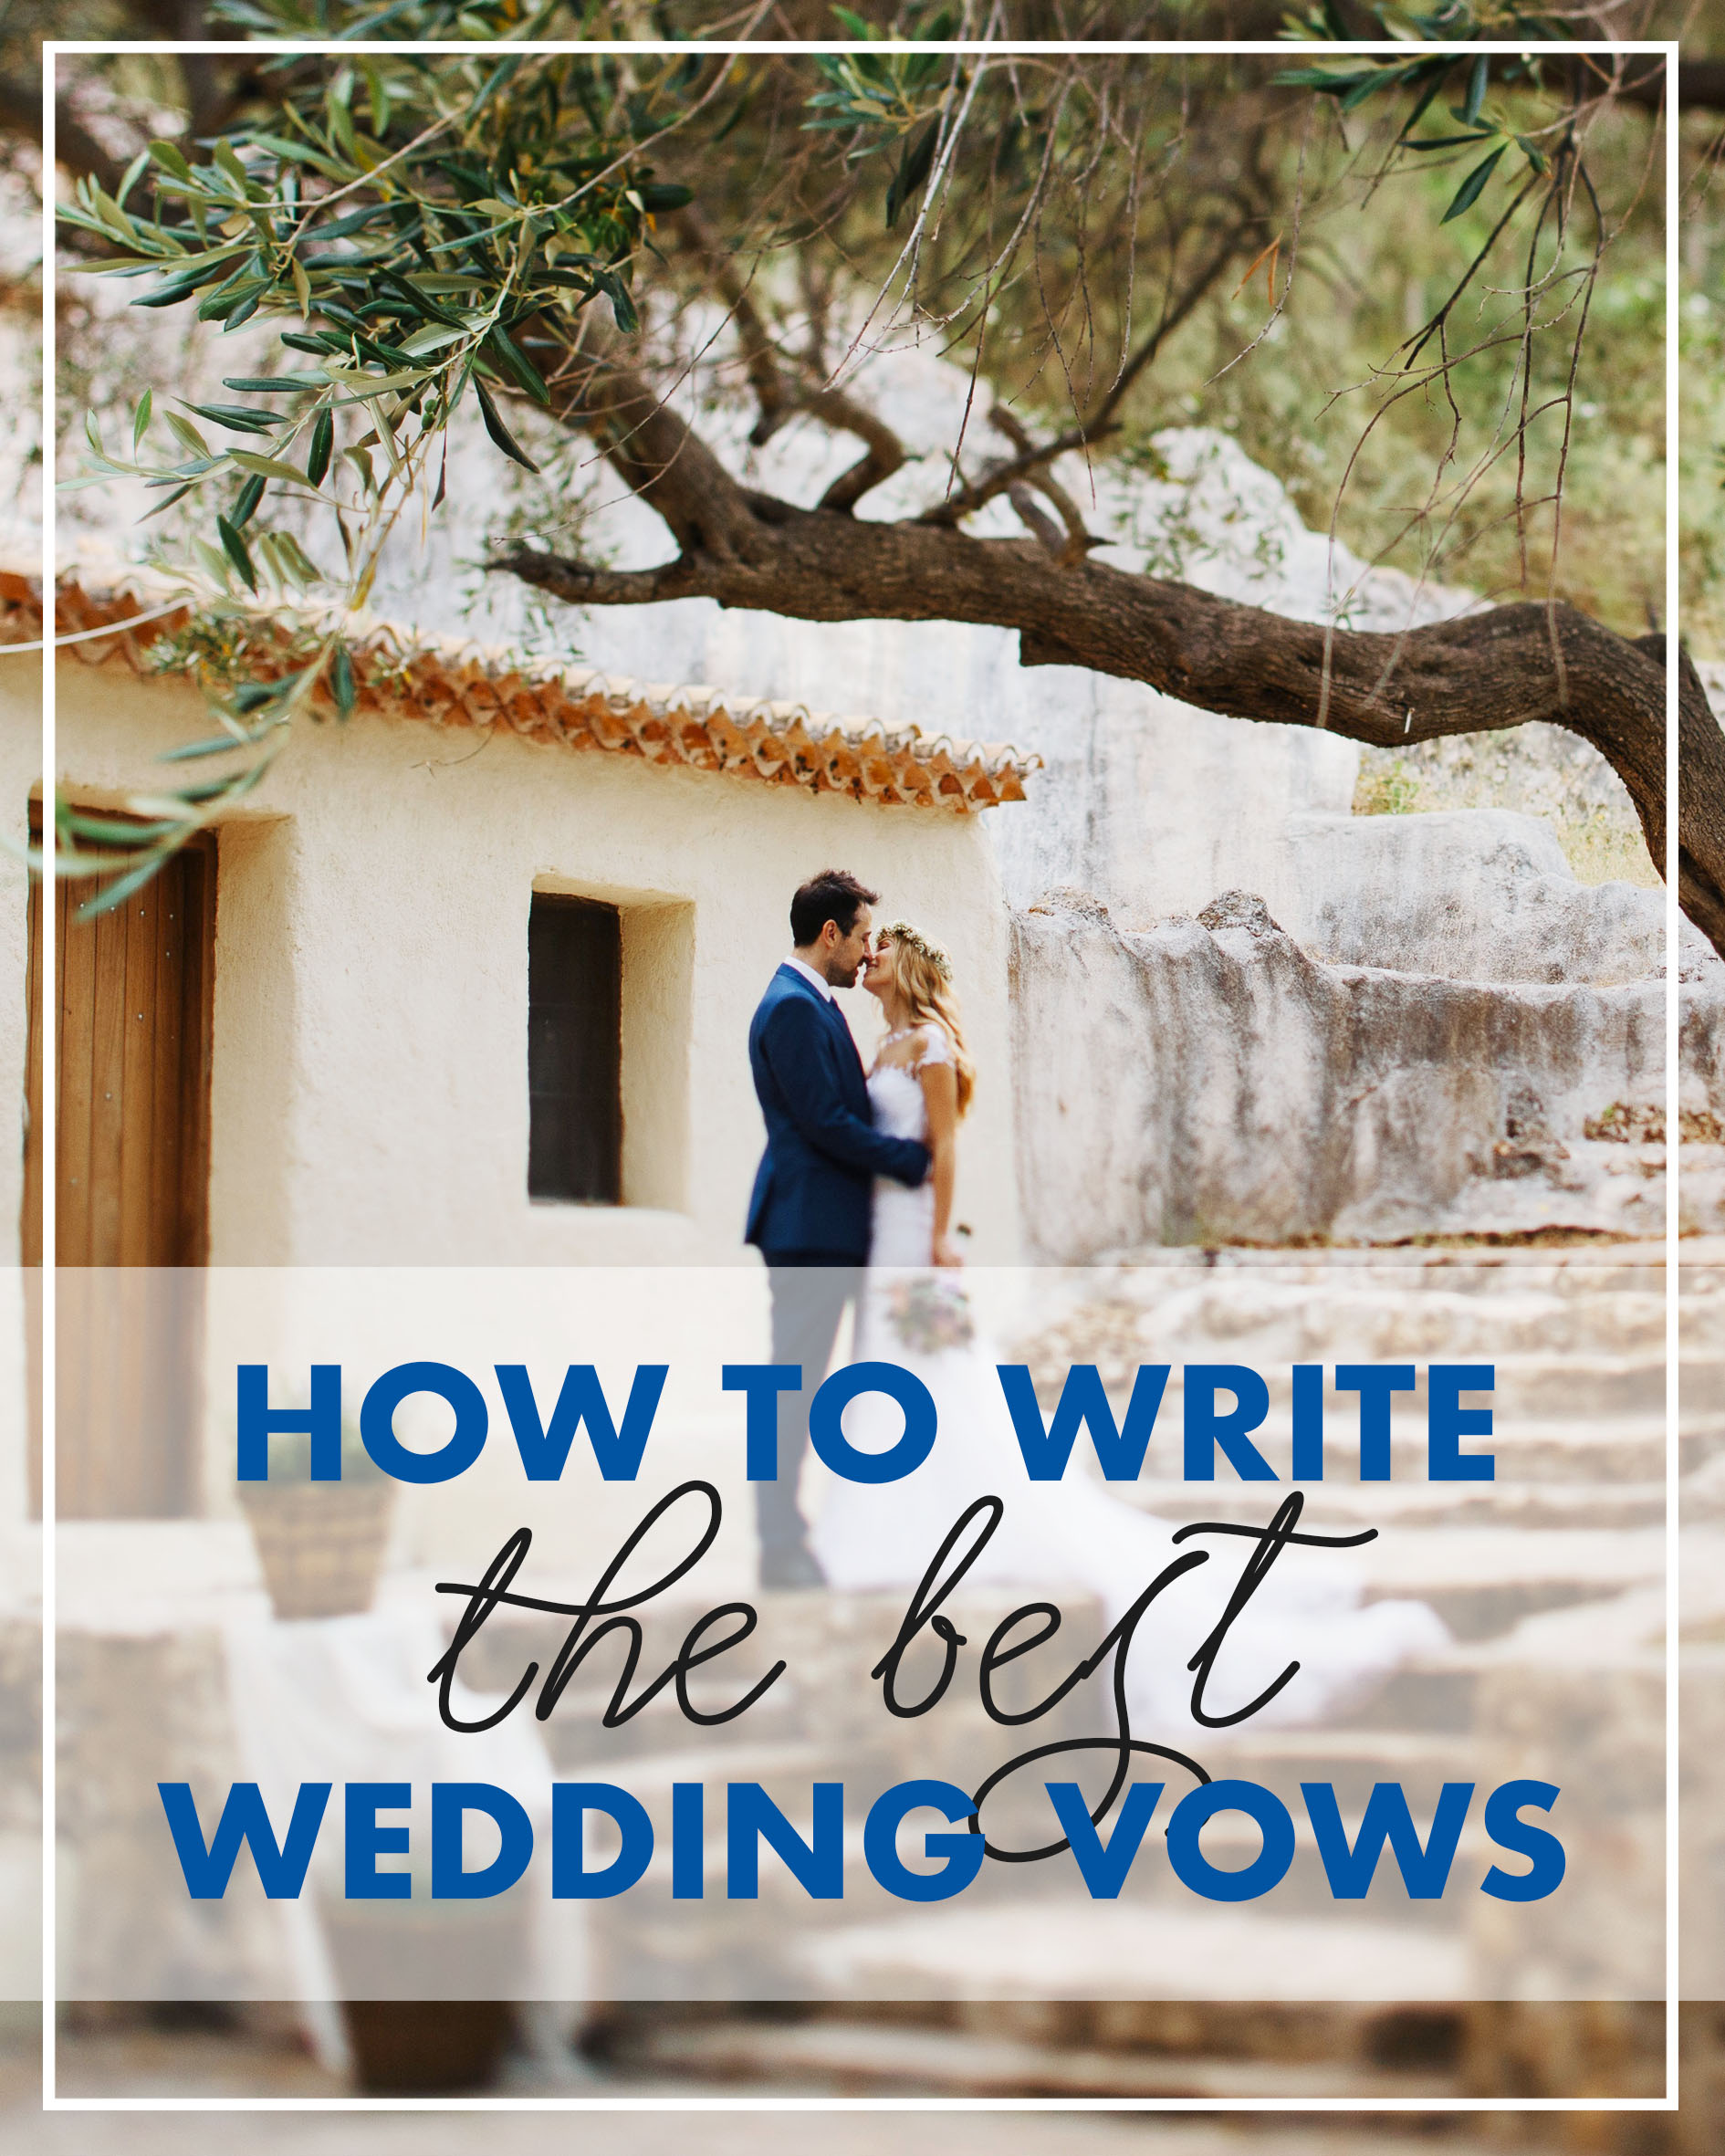 How To Write The Best Wedding Vows